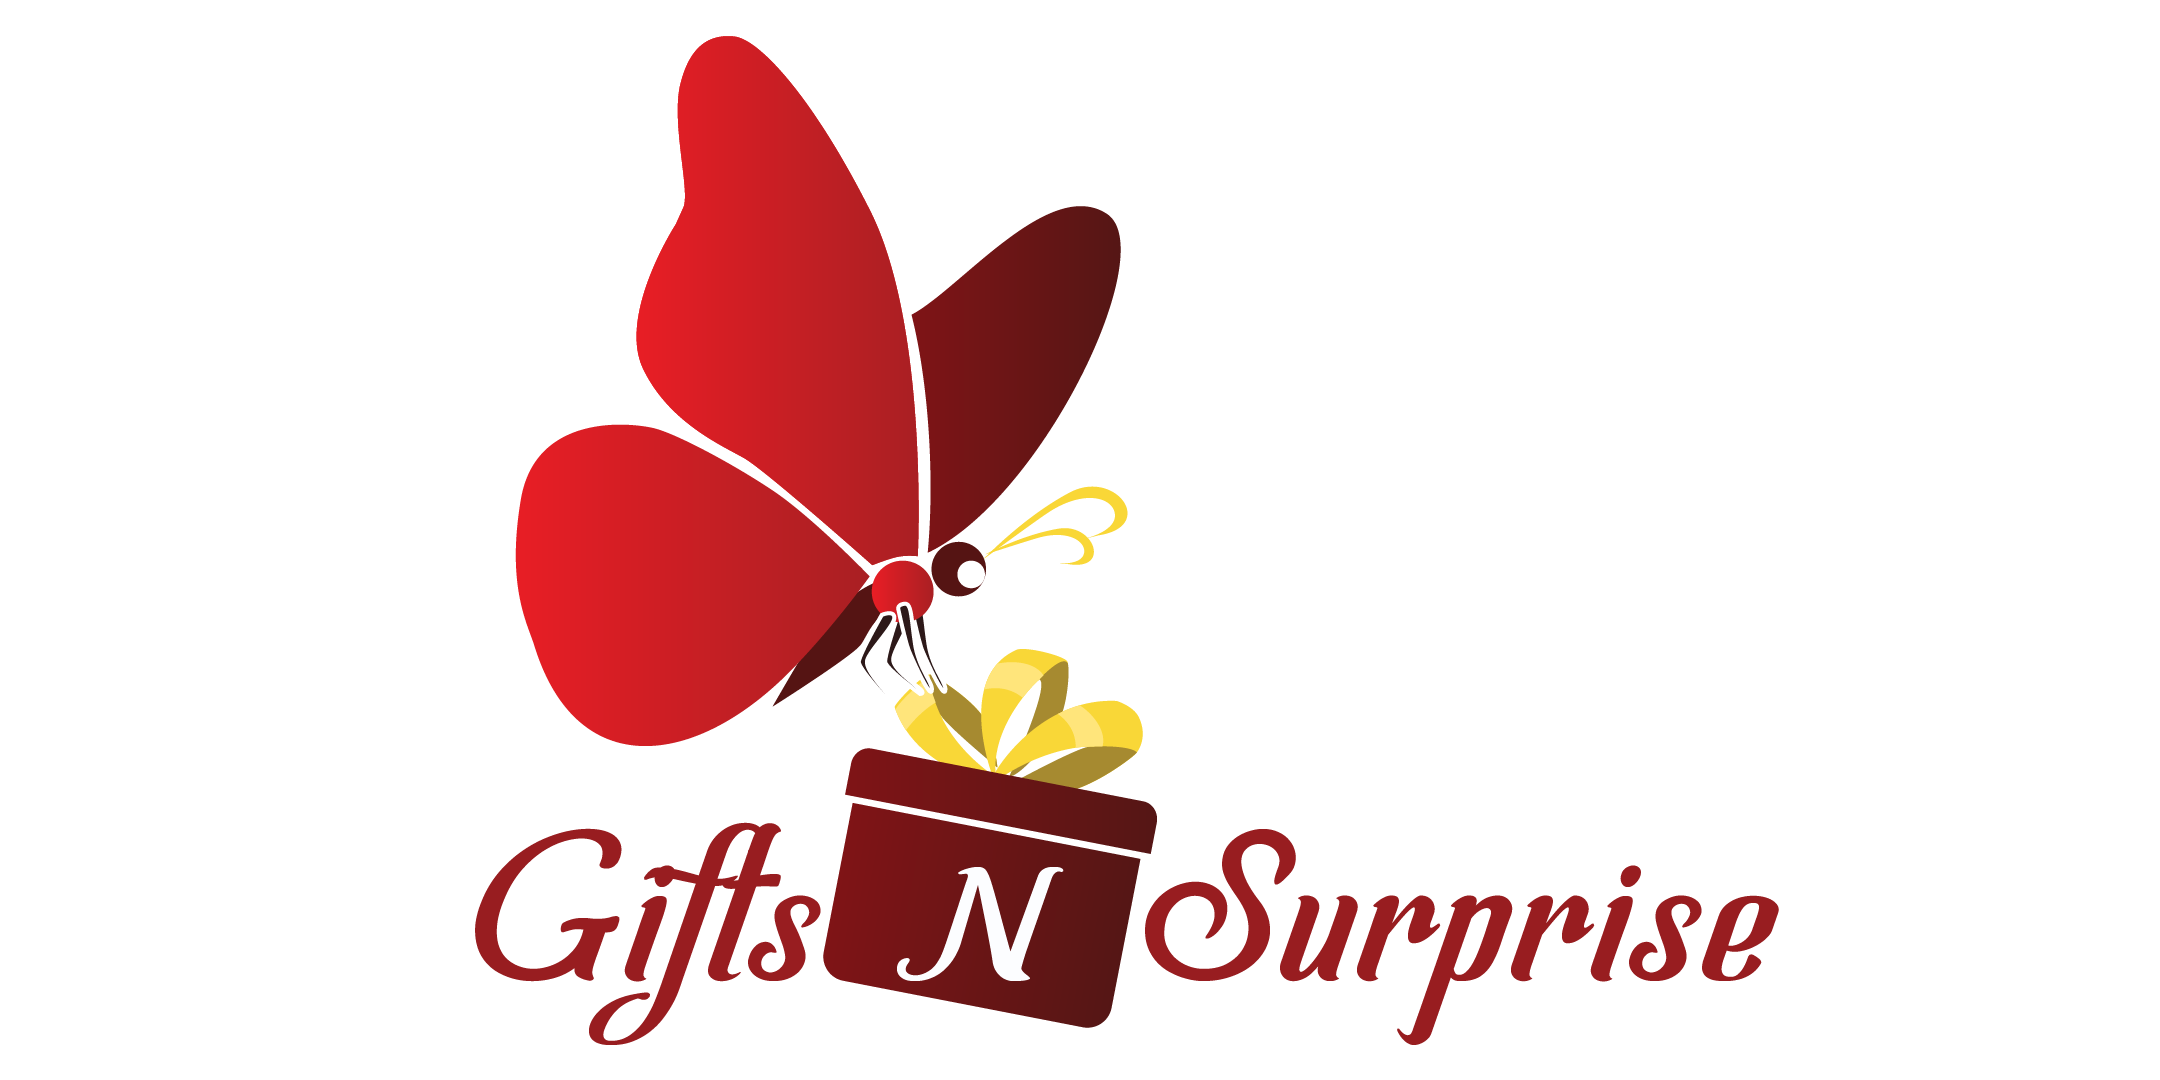 Surprise clipart surprise gift. Gifts n delivery online